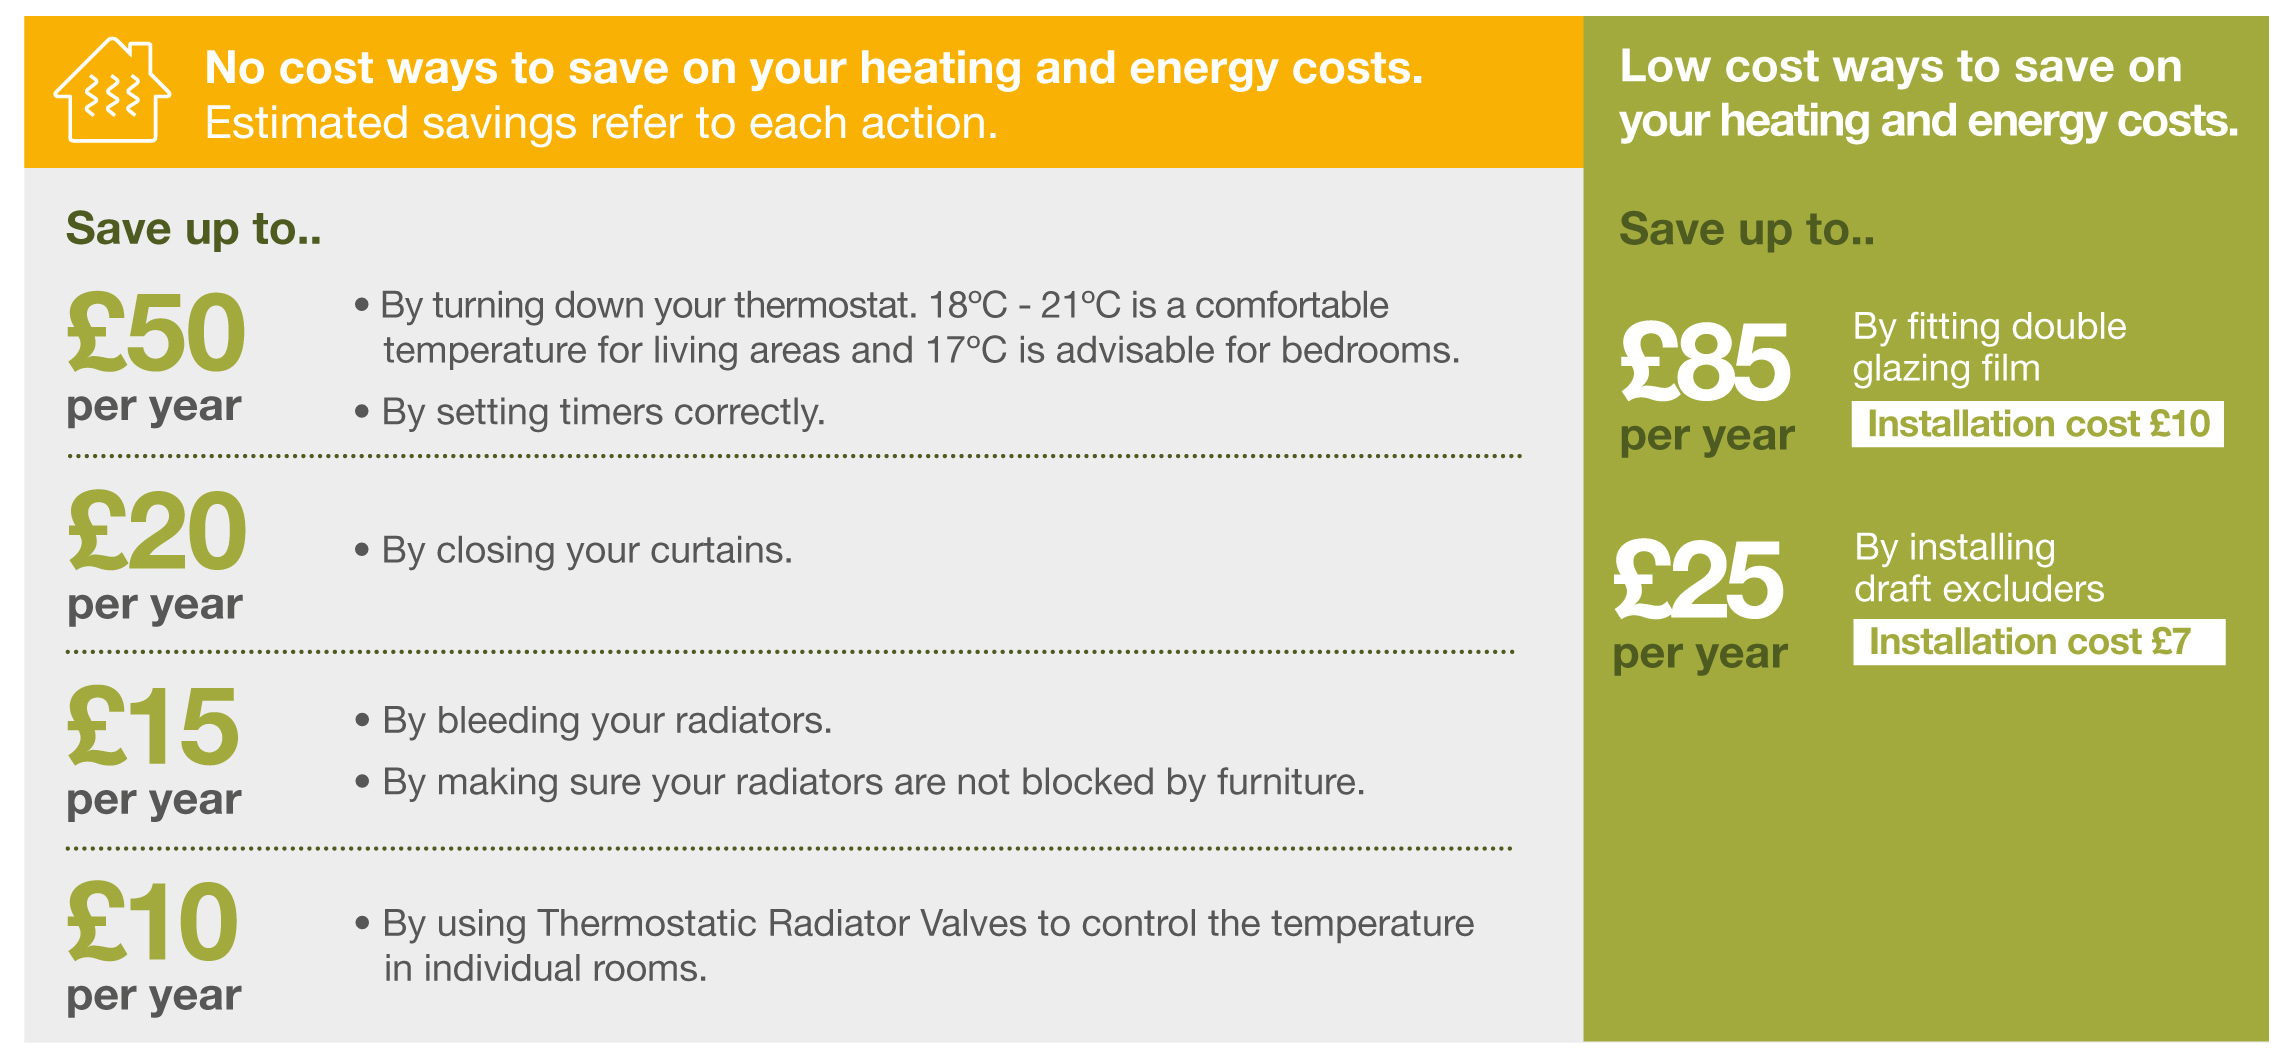 Heating Savings